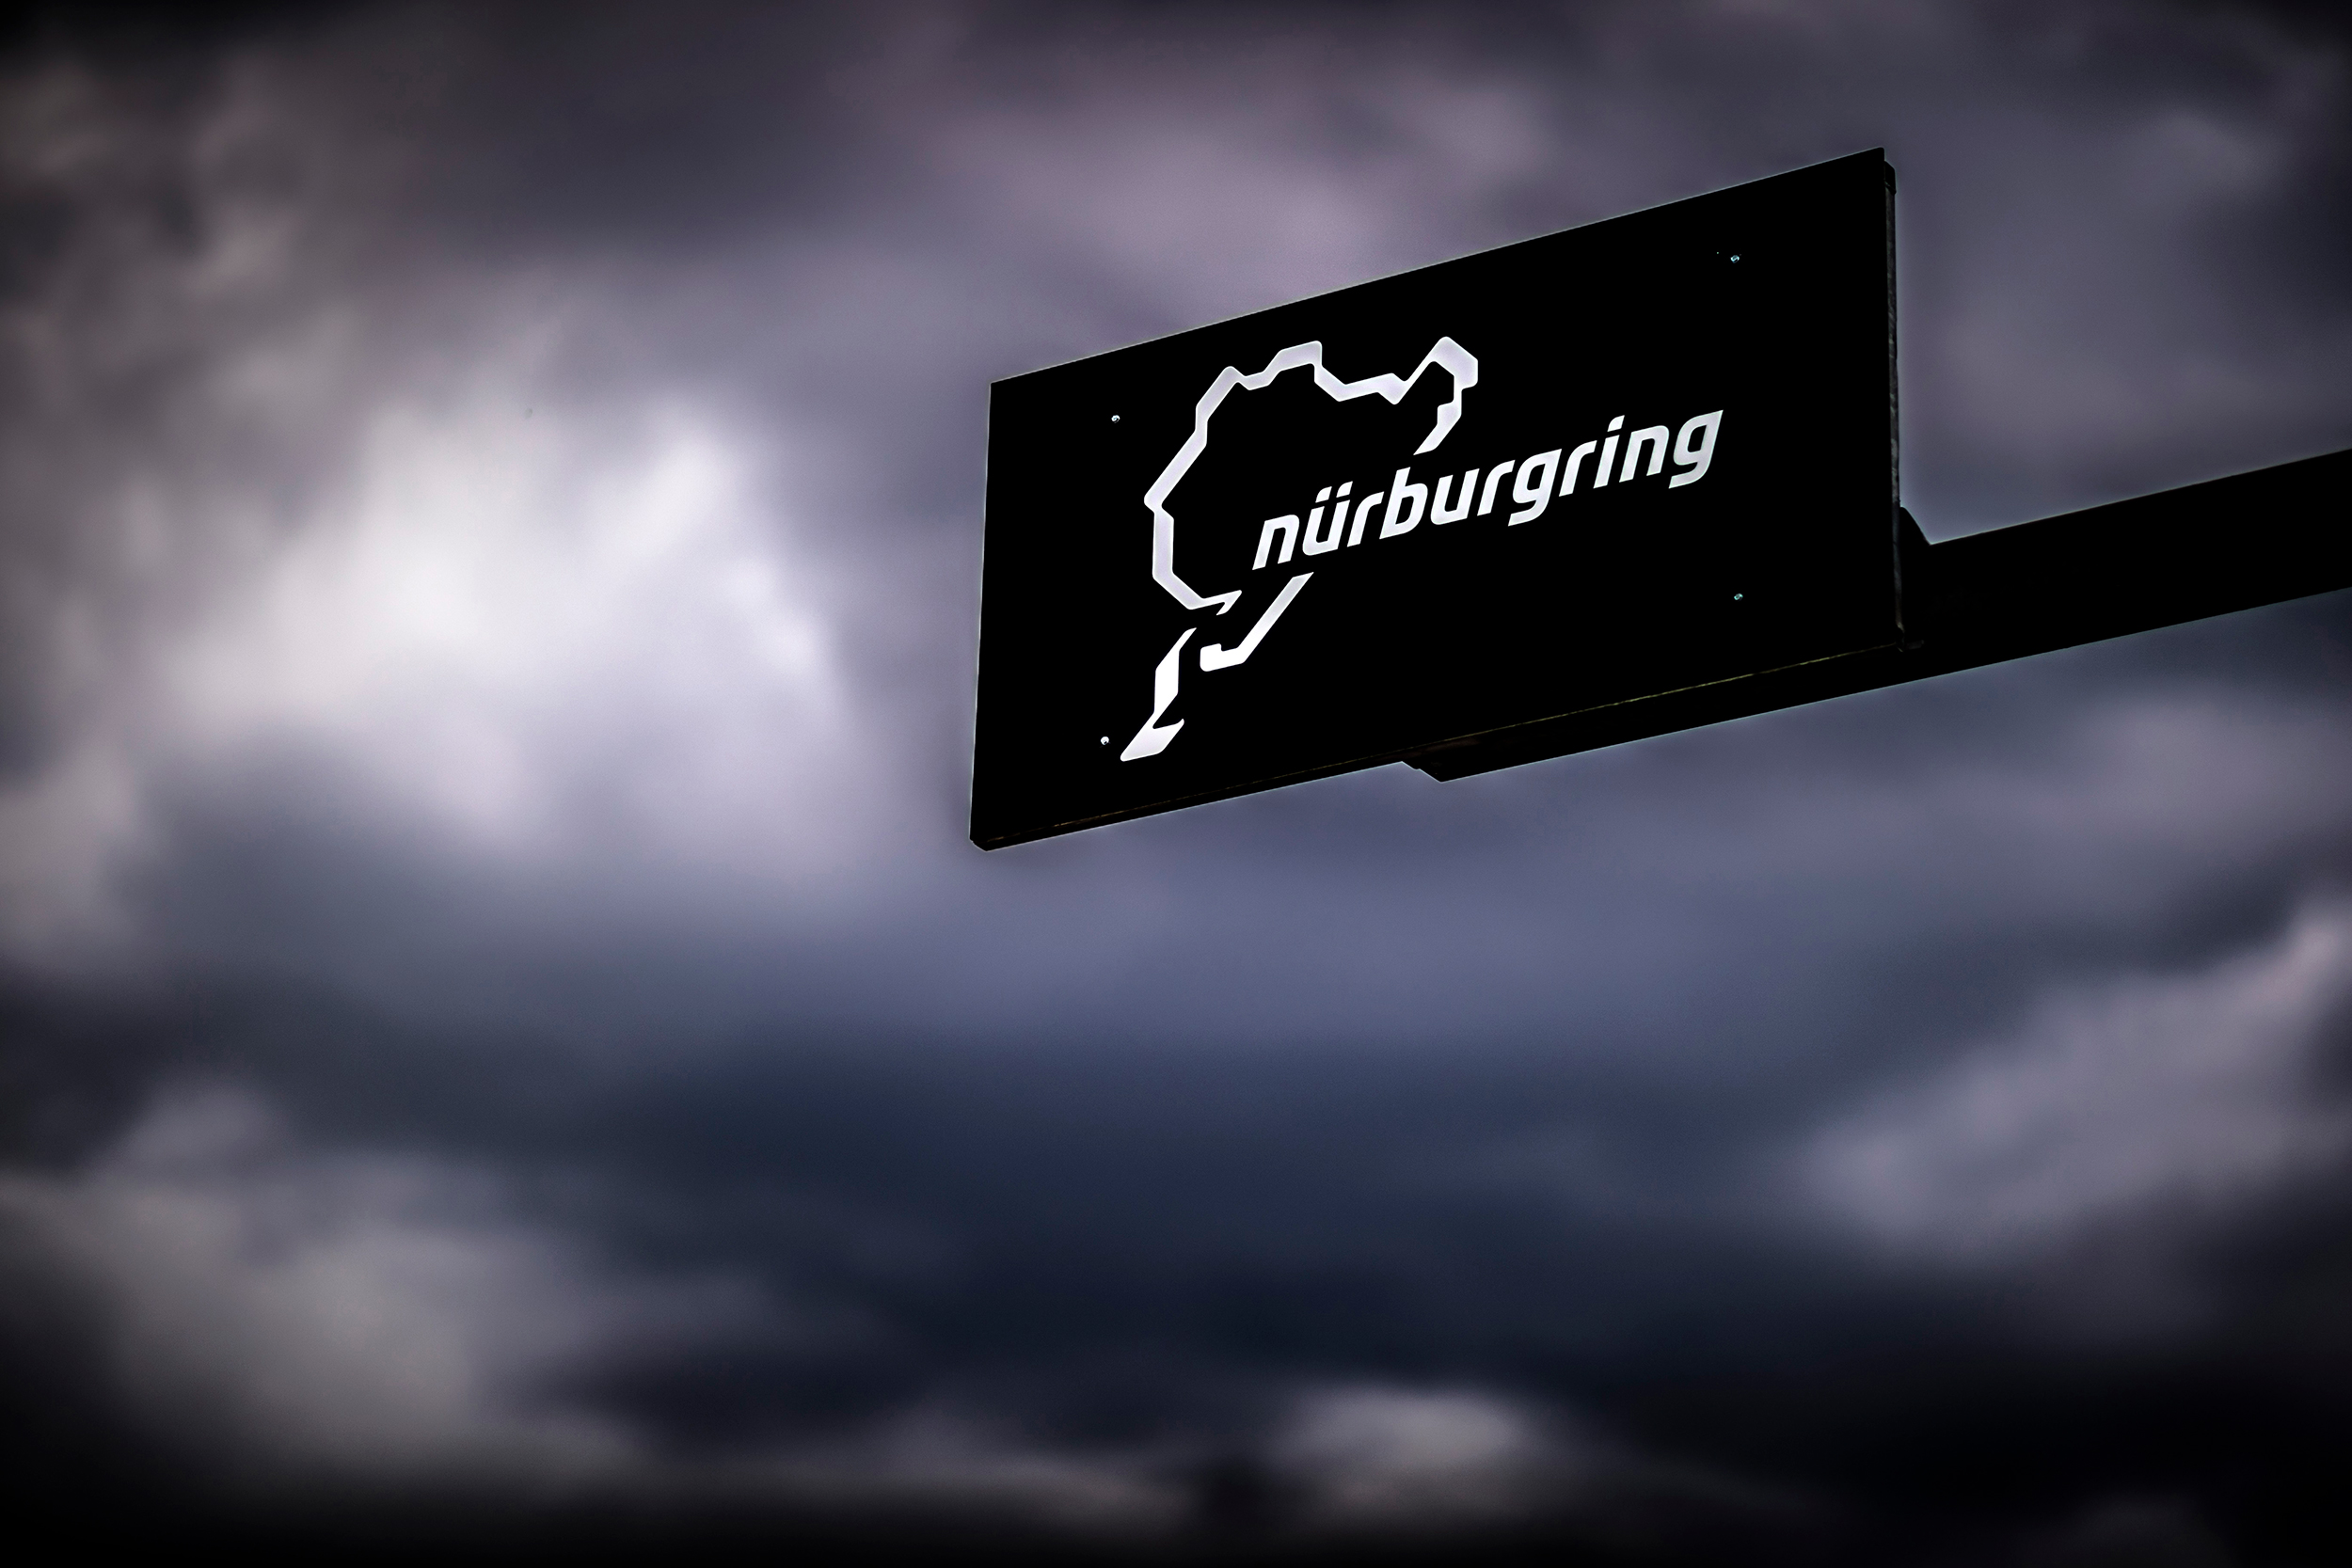 6 Hours of Nurburgring